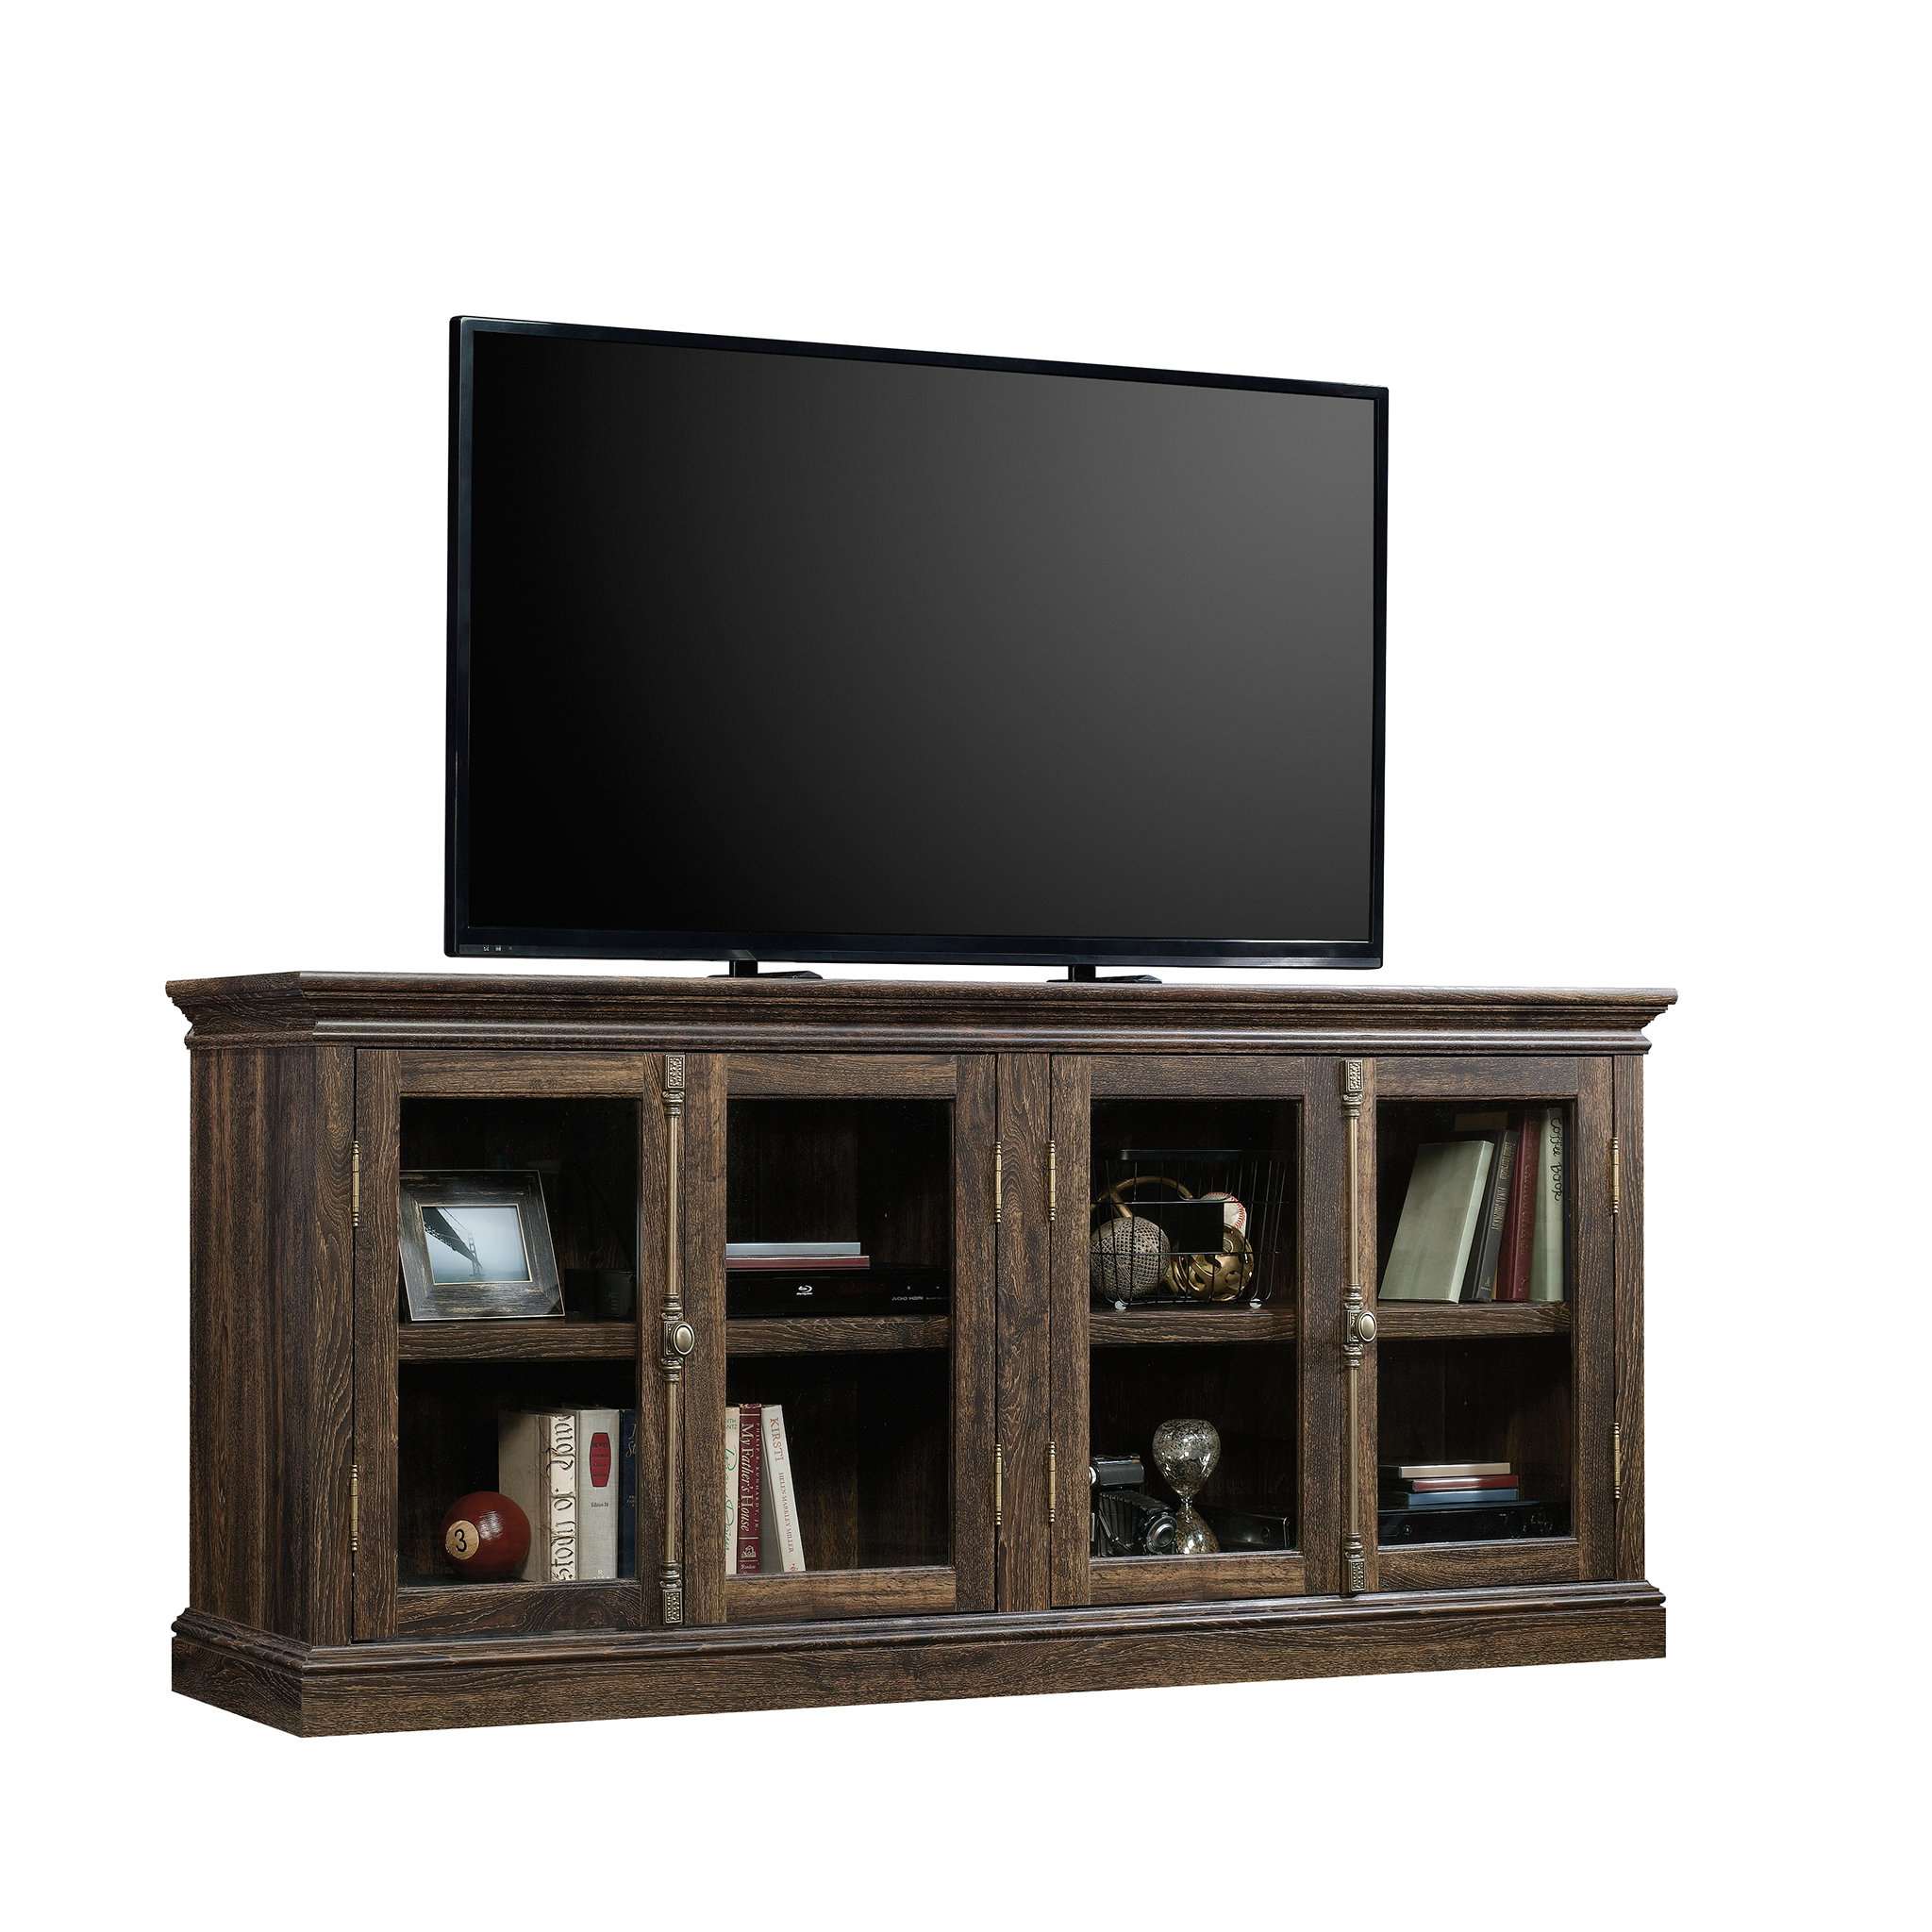 Tv Stands | Joss & Main Within Oxford 70 Inch Tv Stands (View 24 of 30)